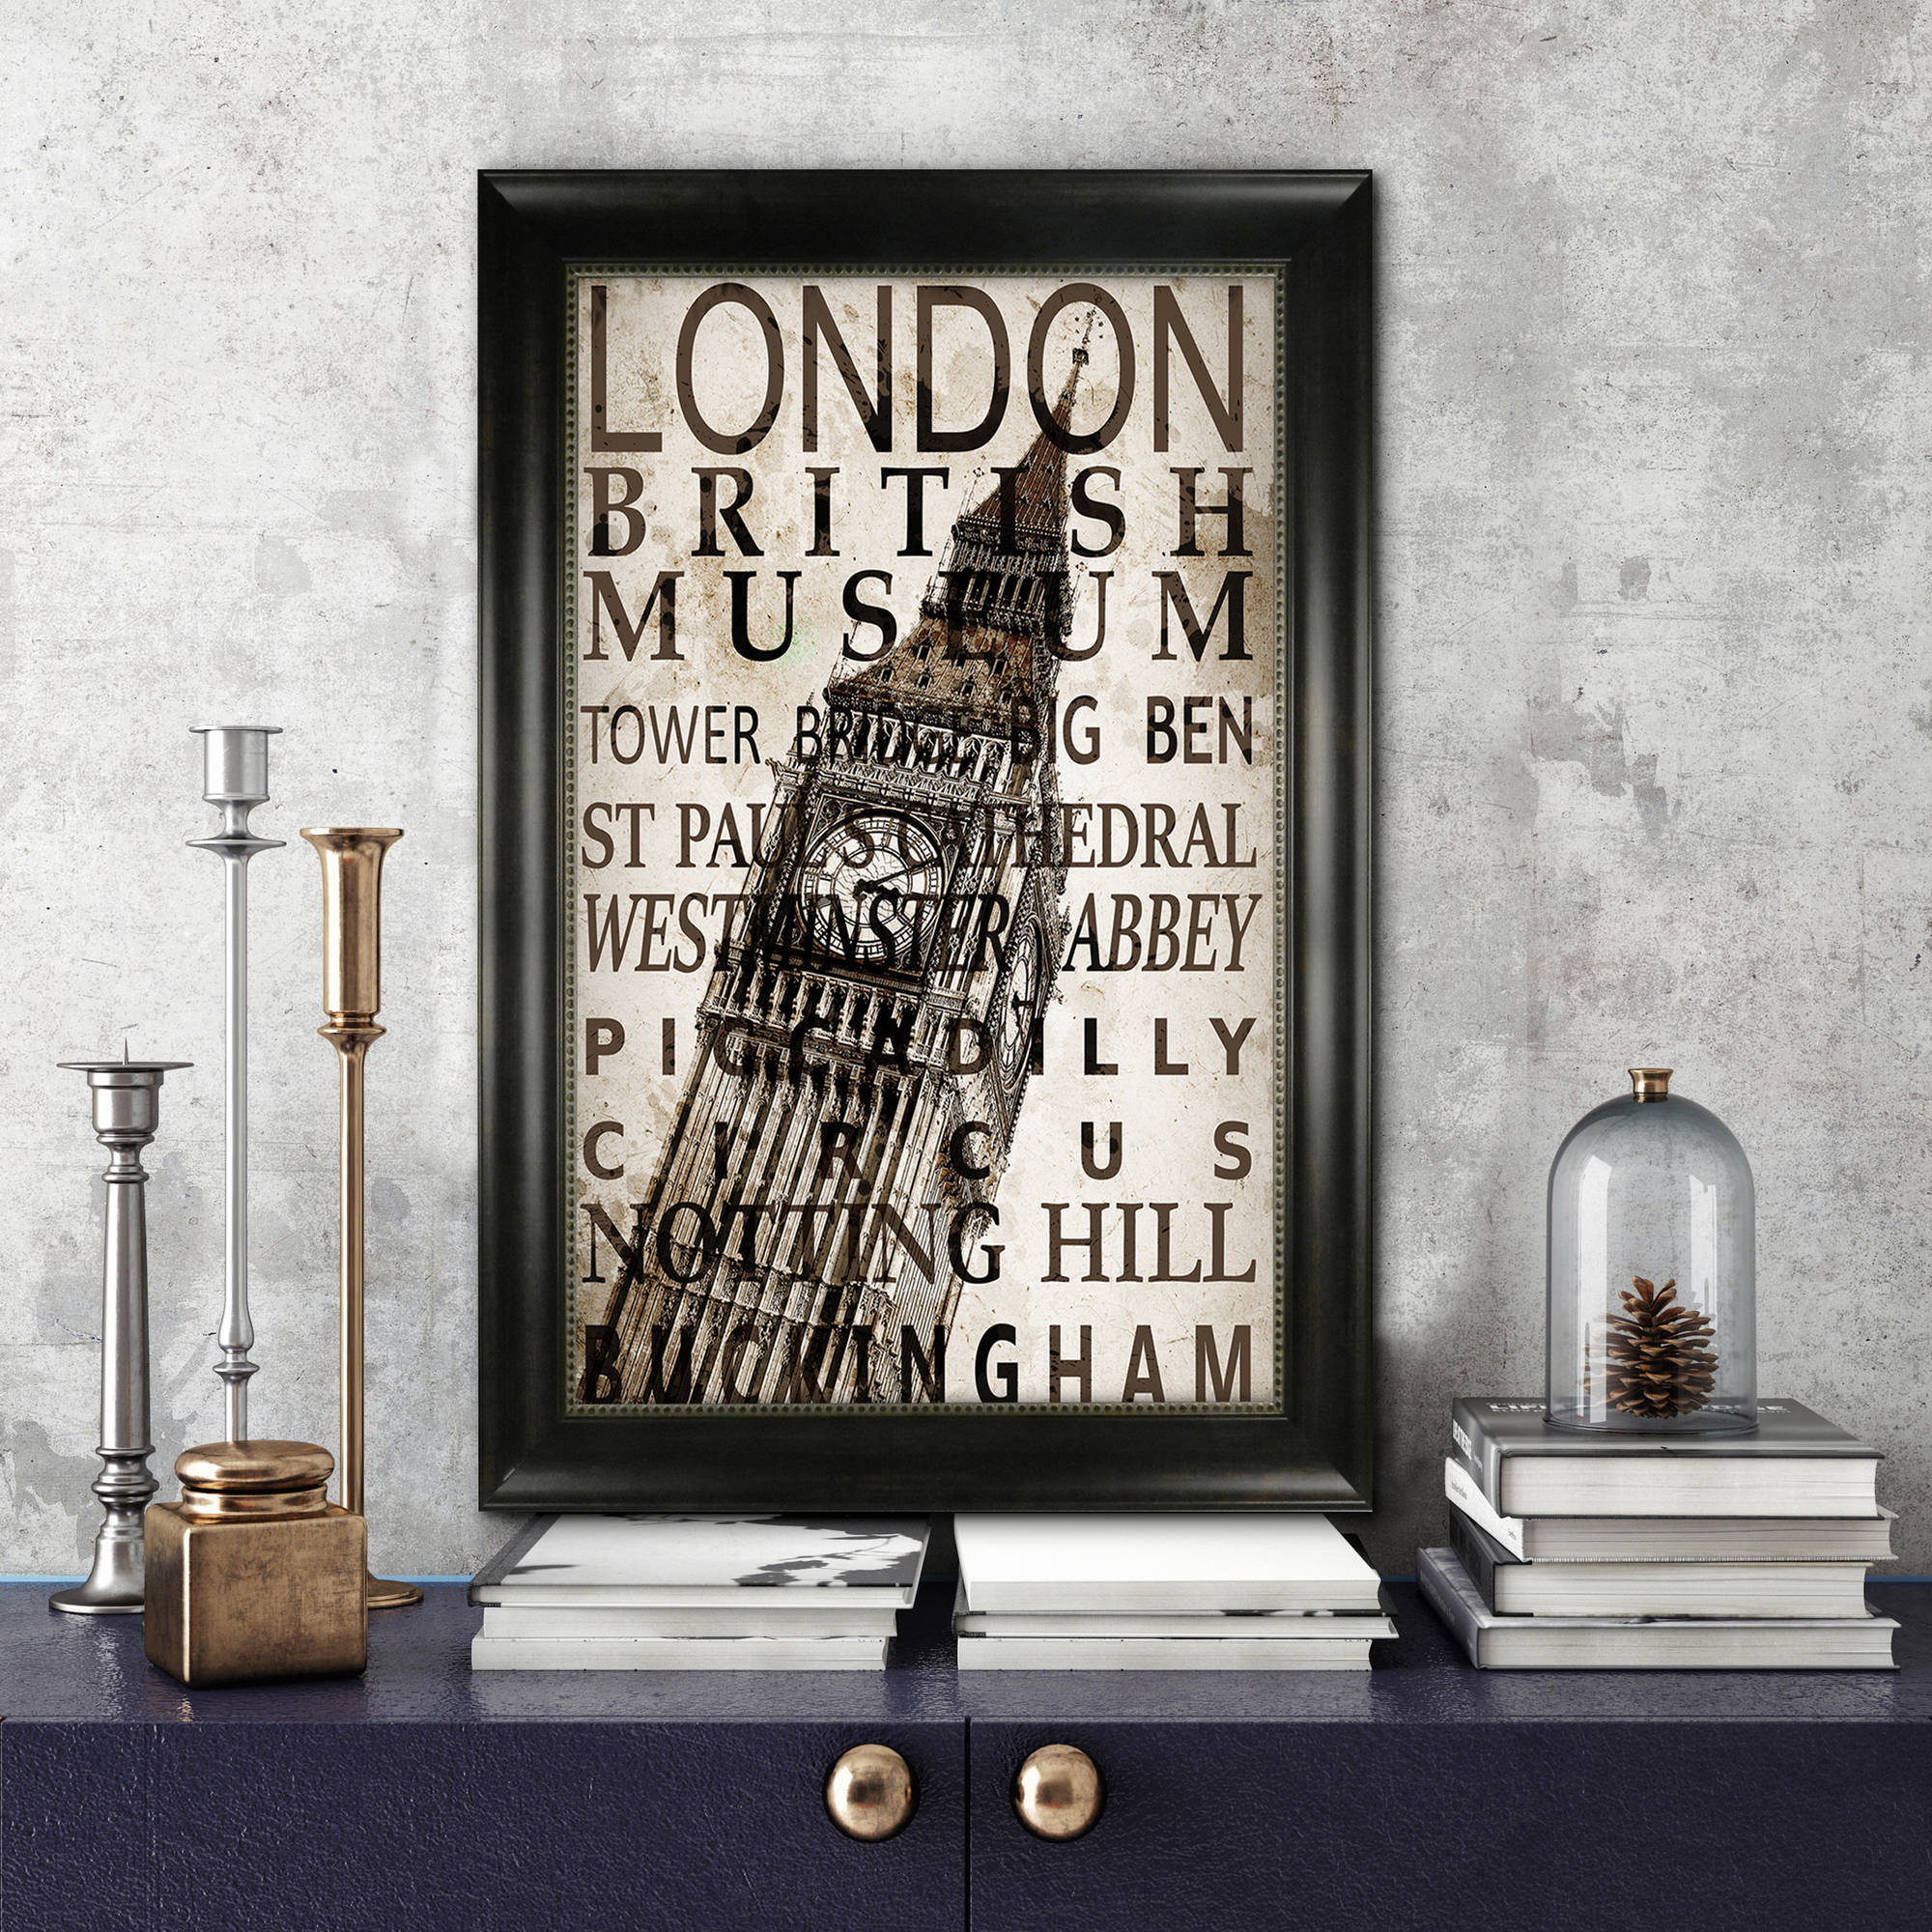 "Better Homes and Gardens Bronze Monteclair Poster Frame, 18"" x 24"" (45.72 cm x 60.96 cm)"